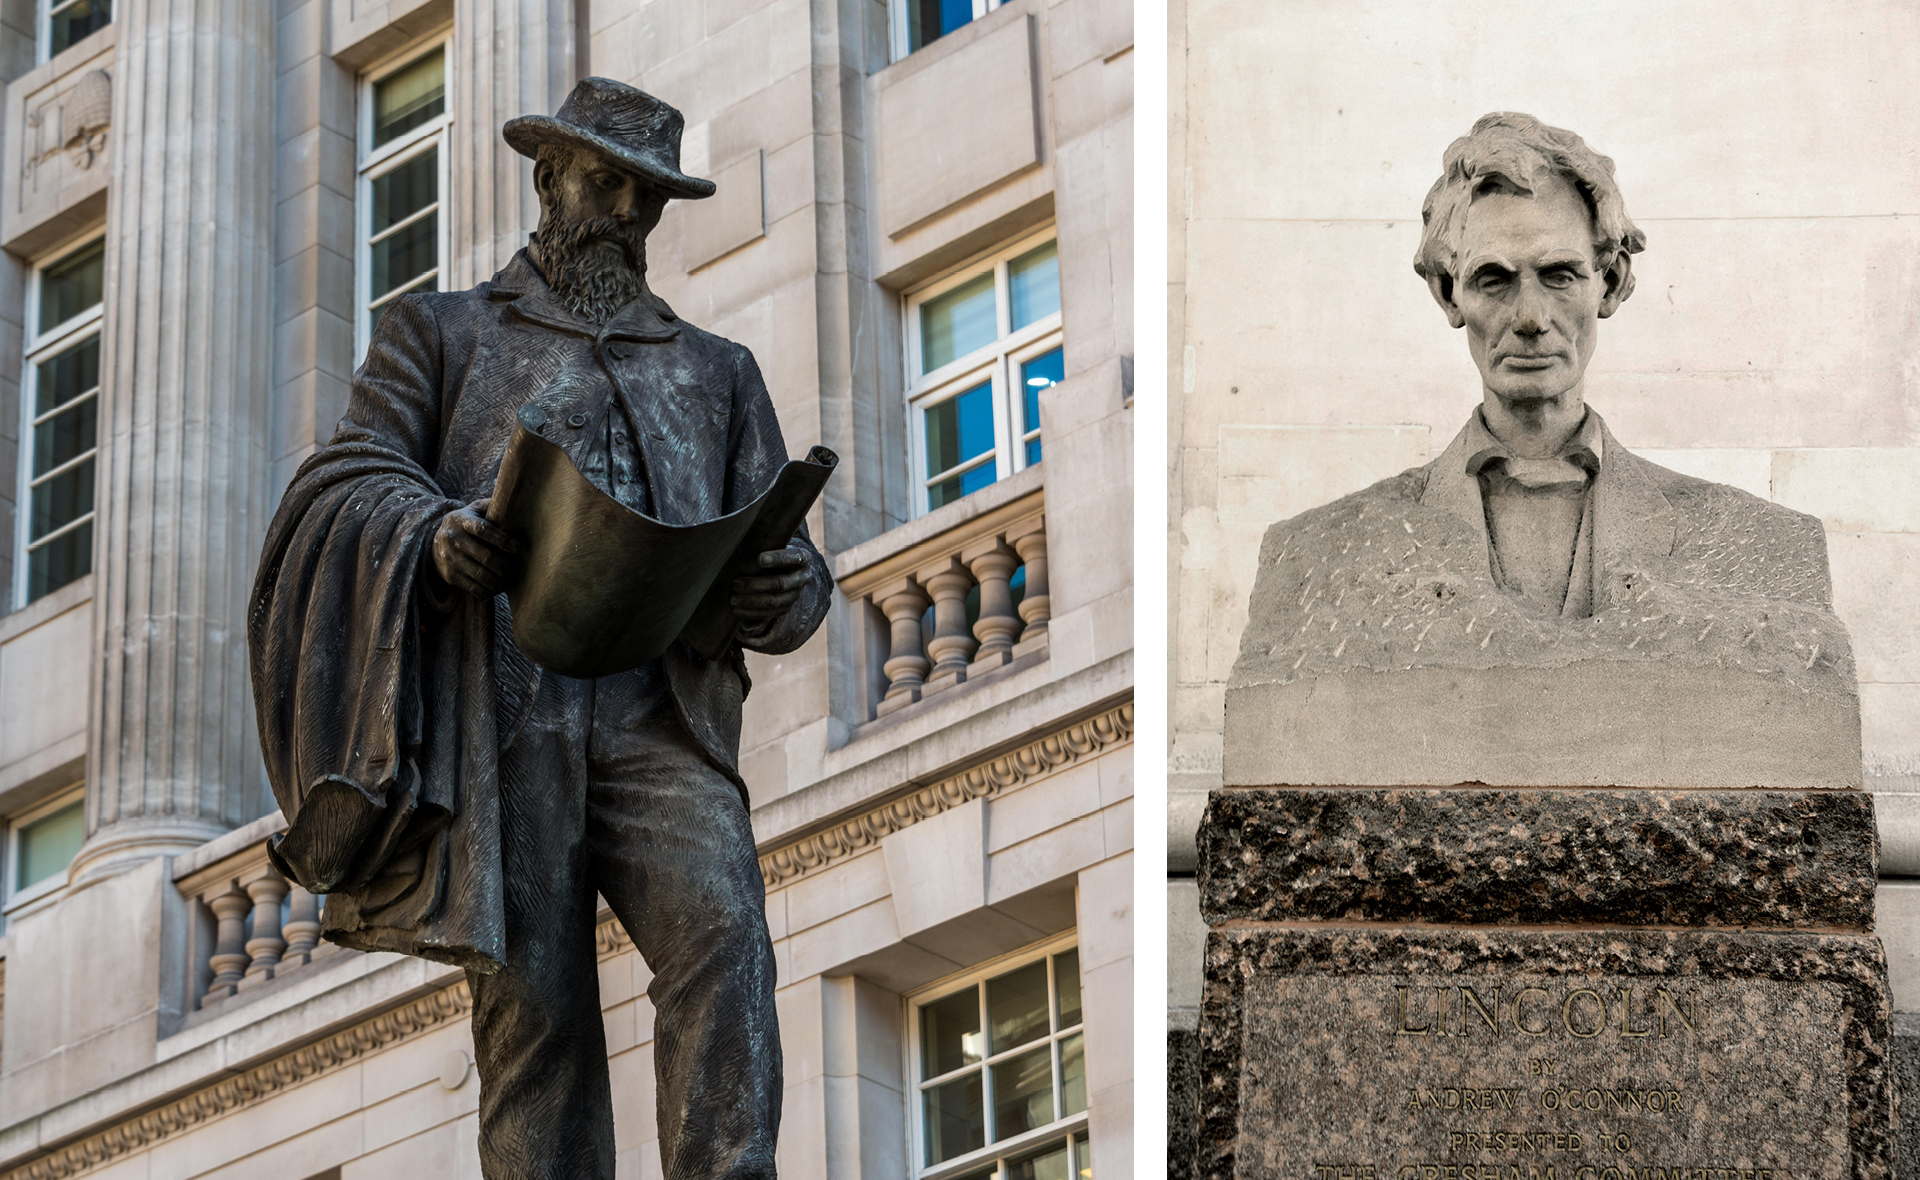 Statues of James Henry Greathead and Abraham Lincoln at The Royal Exchange